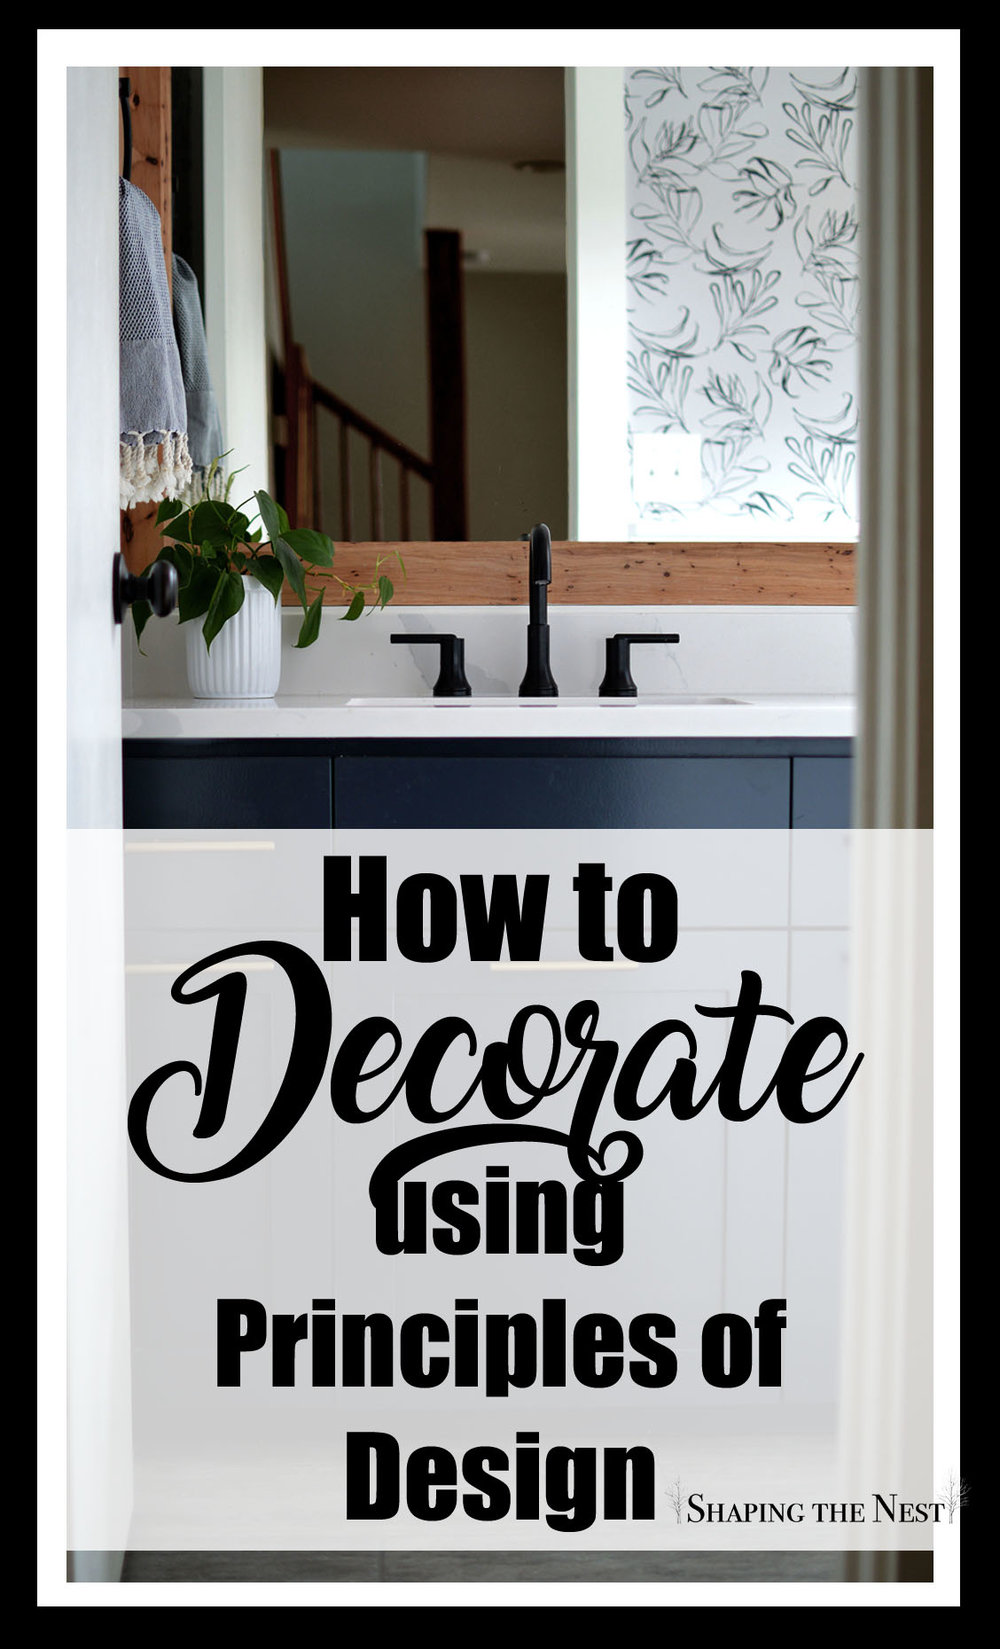 How to Decorate using Principles of Design Pin.jpg